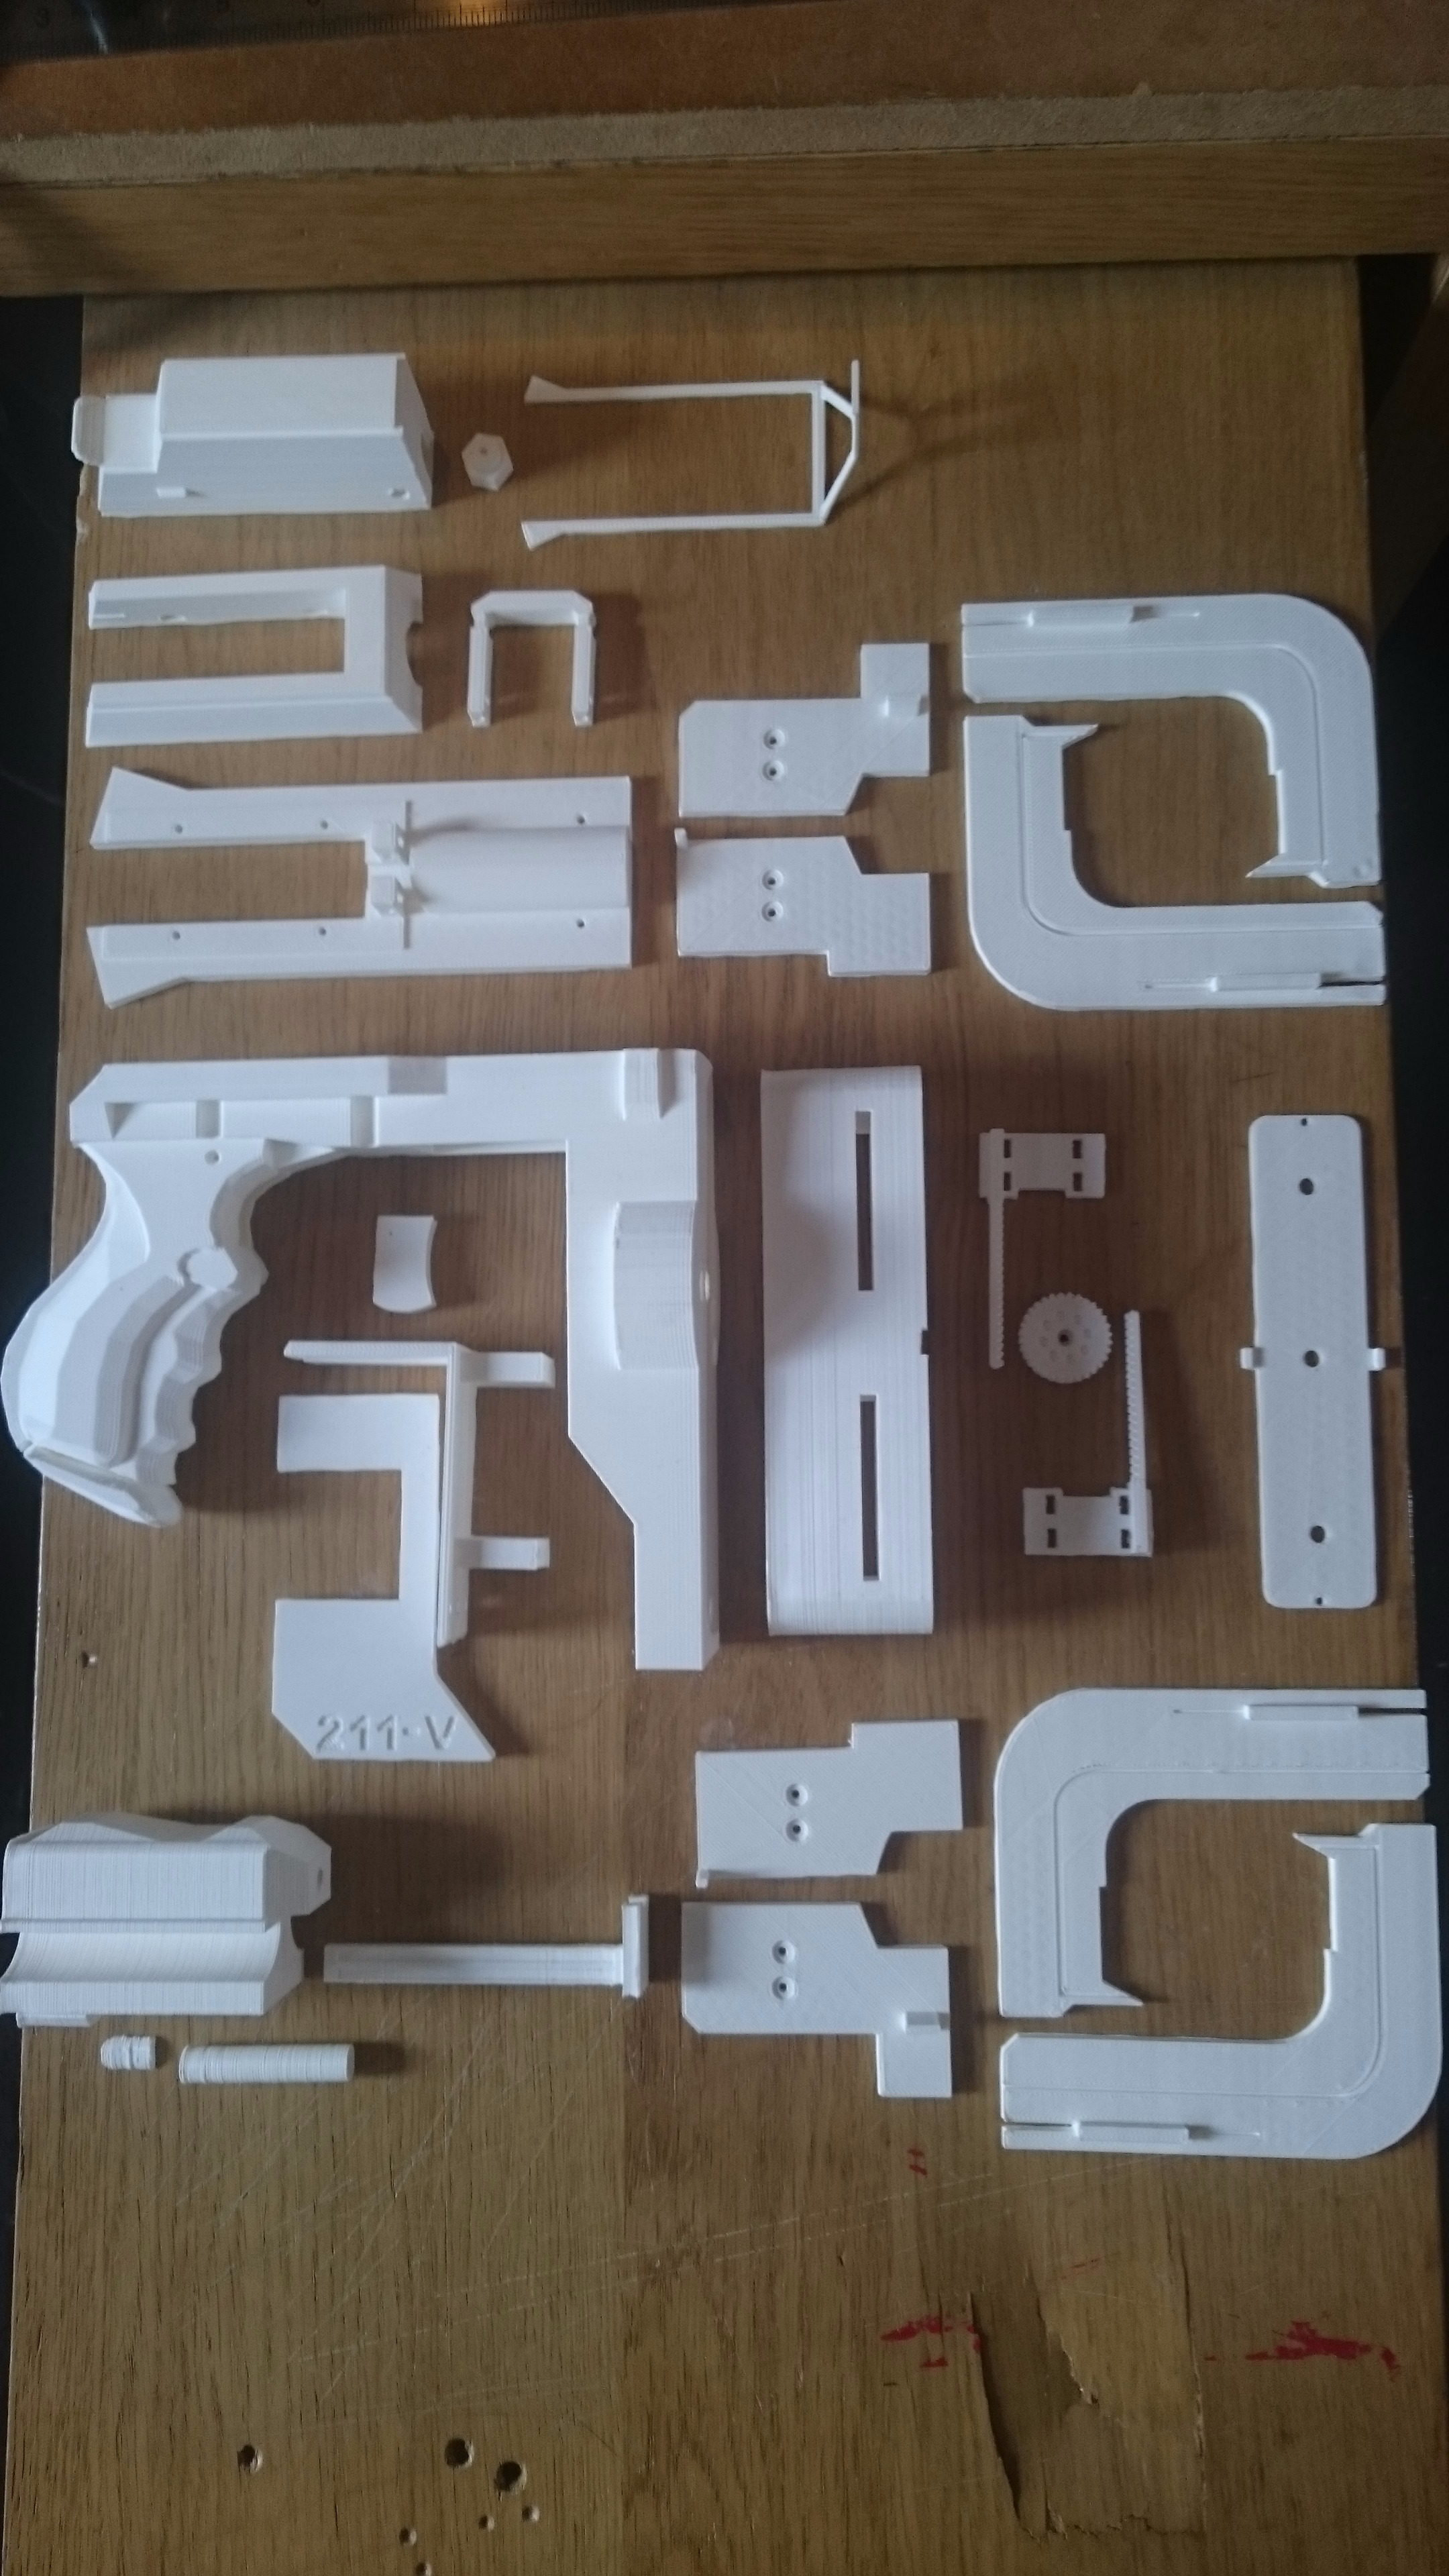 Picture of Printed Parts